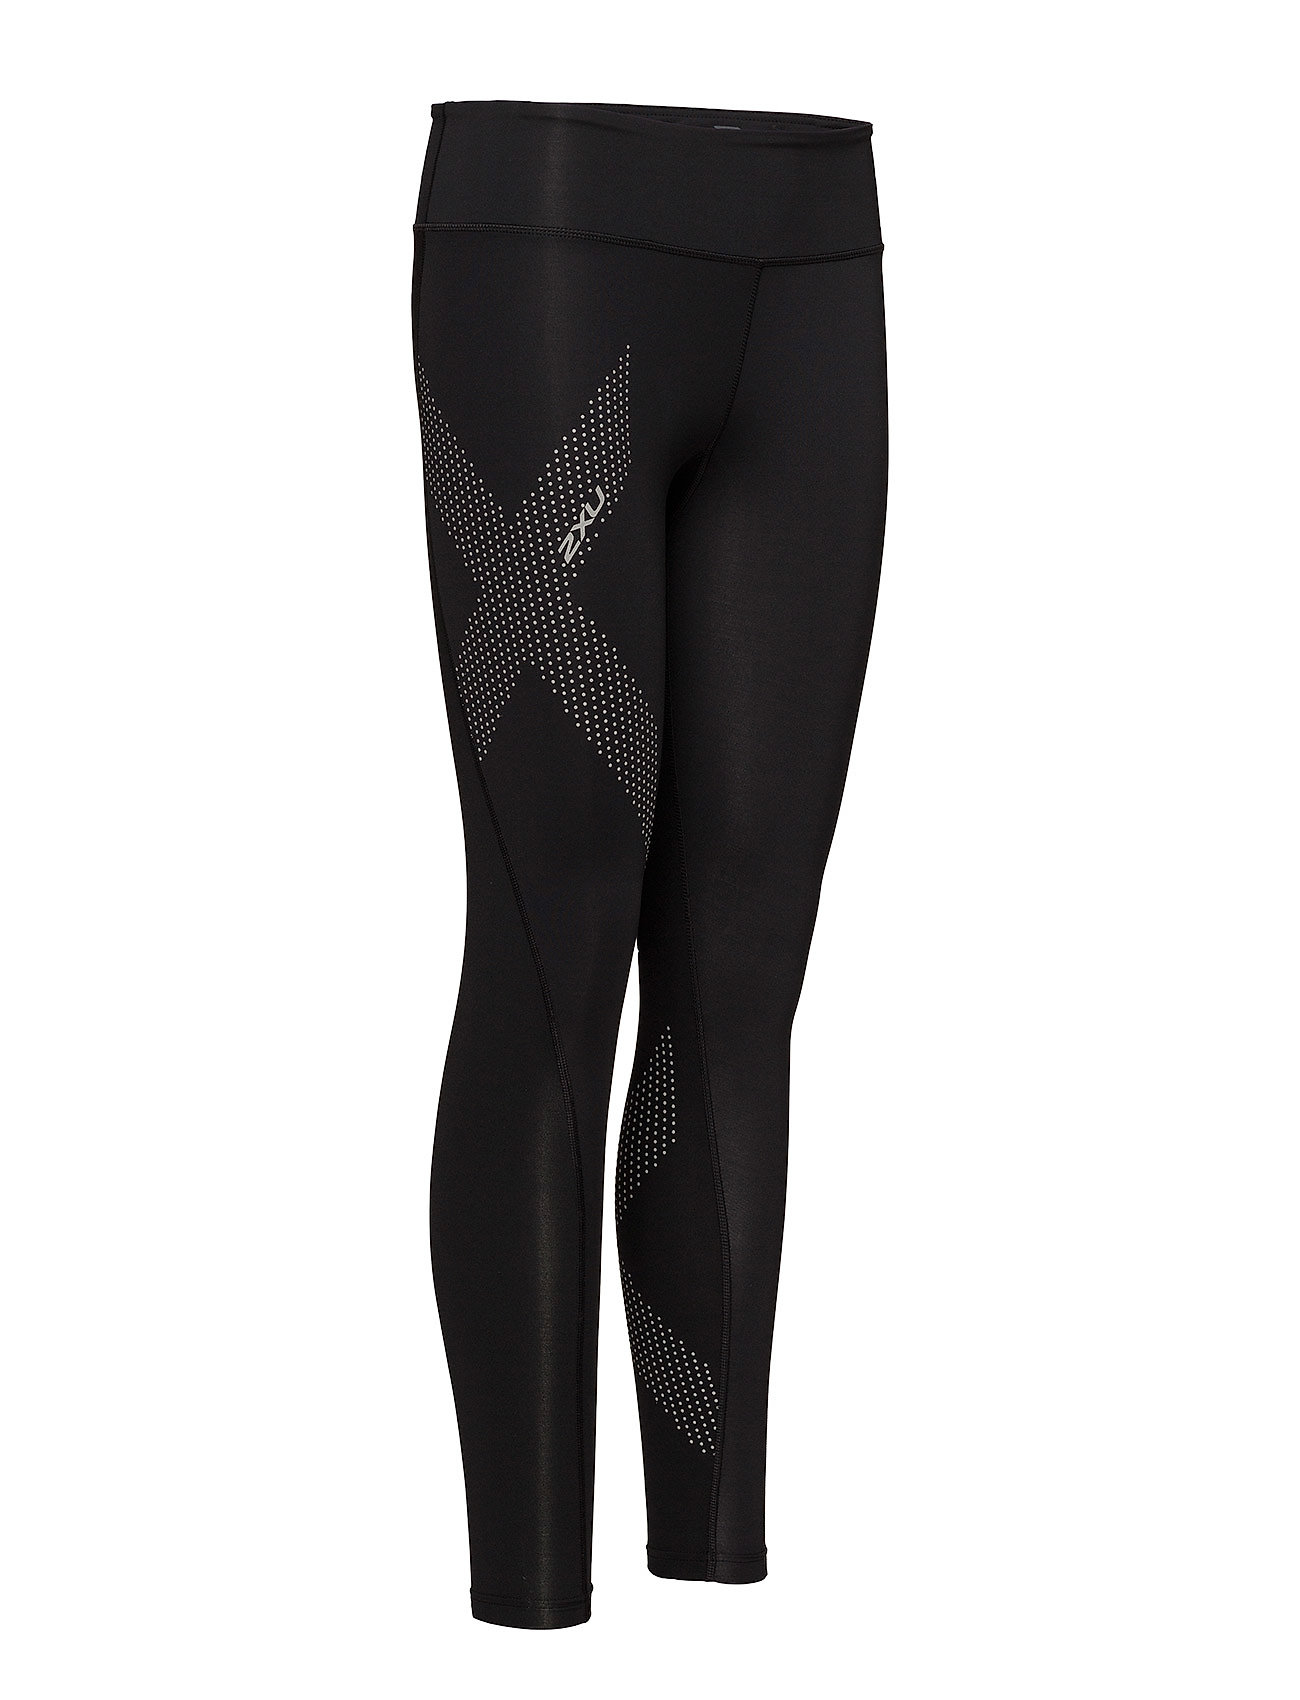 2XU Motion Mid-rise Compression T (Black/dotted Reflective Logo), 639.20